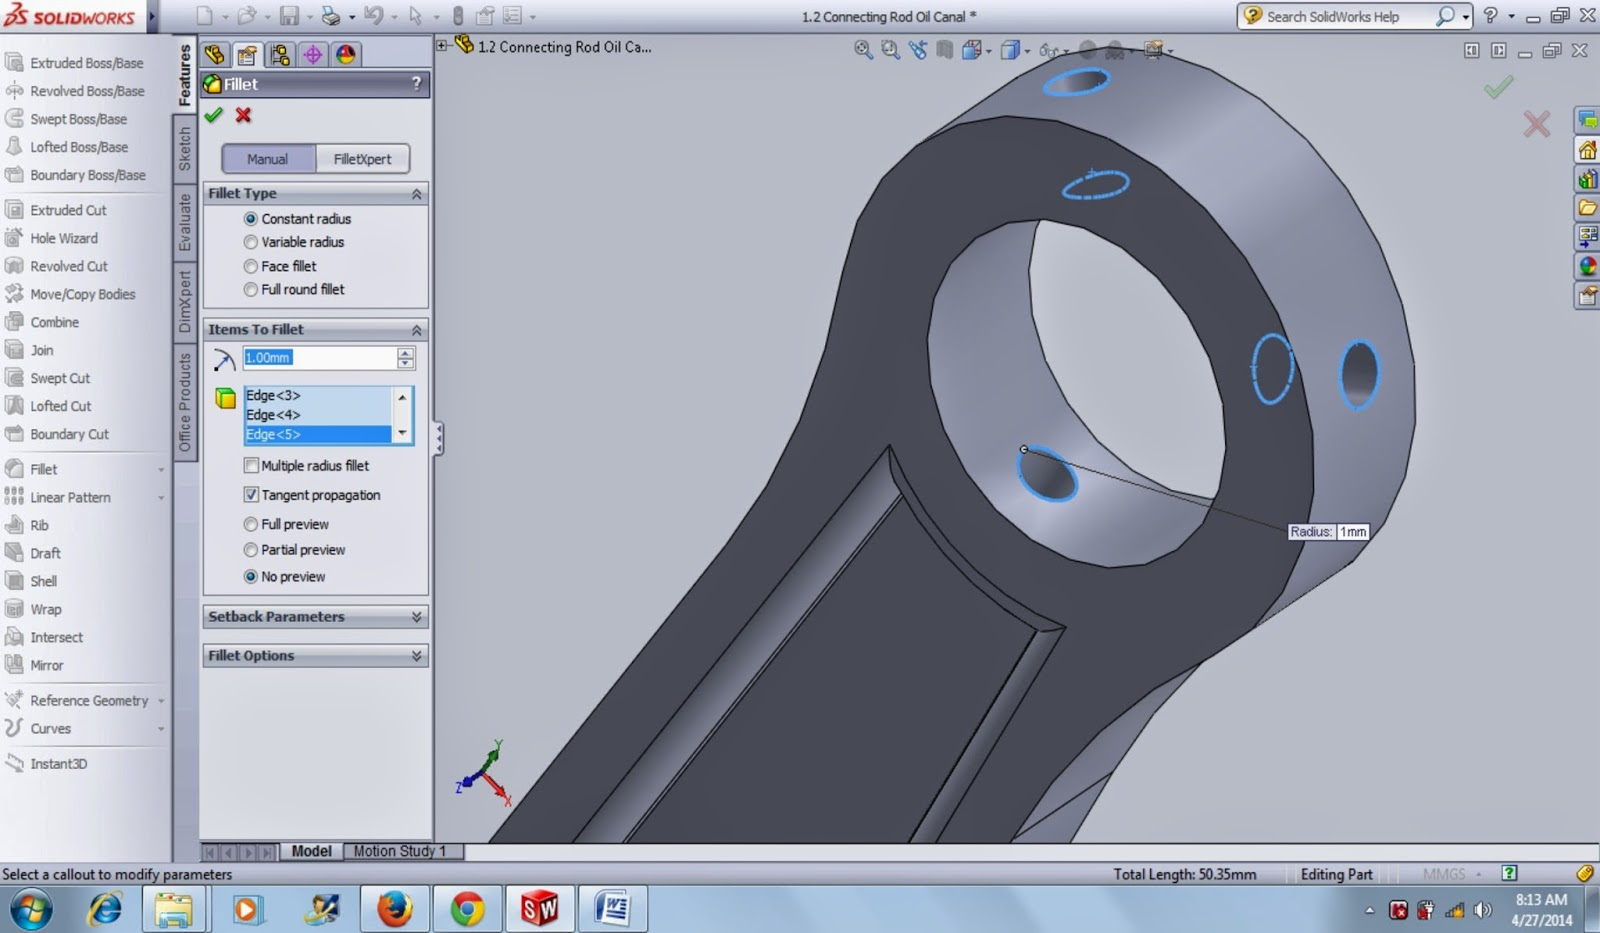 20121117133956239703 as well Engine Connecting Rod furthermore 10336783 further Single Plate Clutch 2d Drawings also Solidworks Block Diagram. on engine connecting rod solidworks